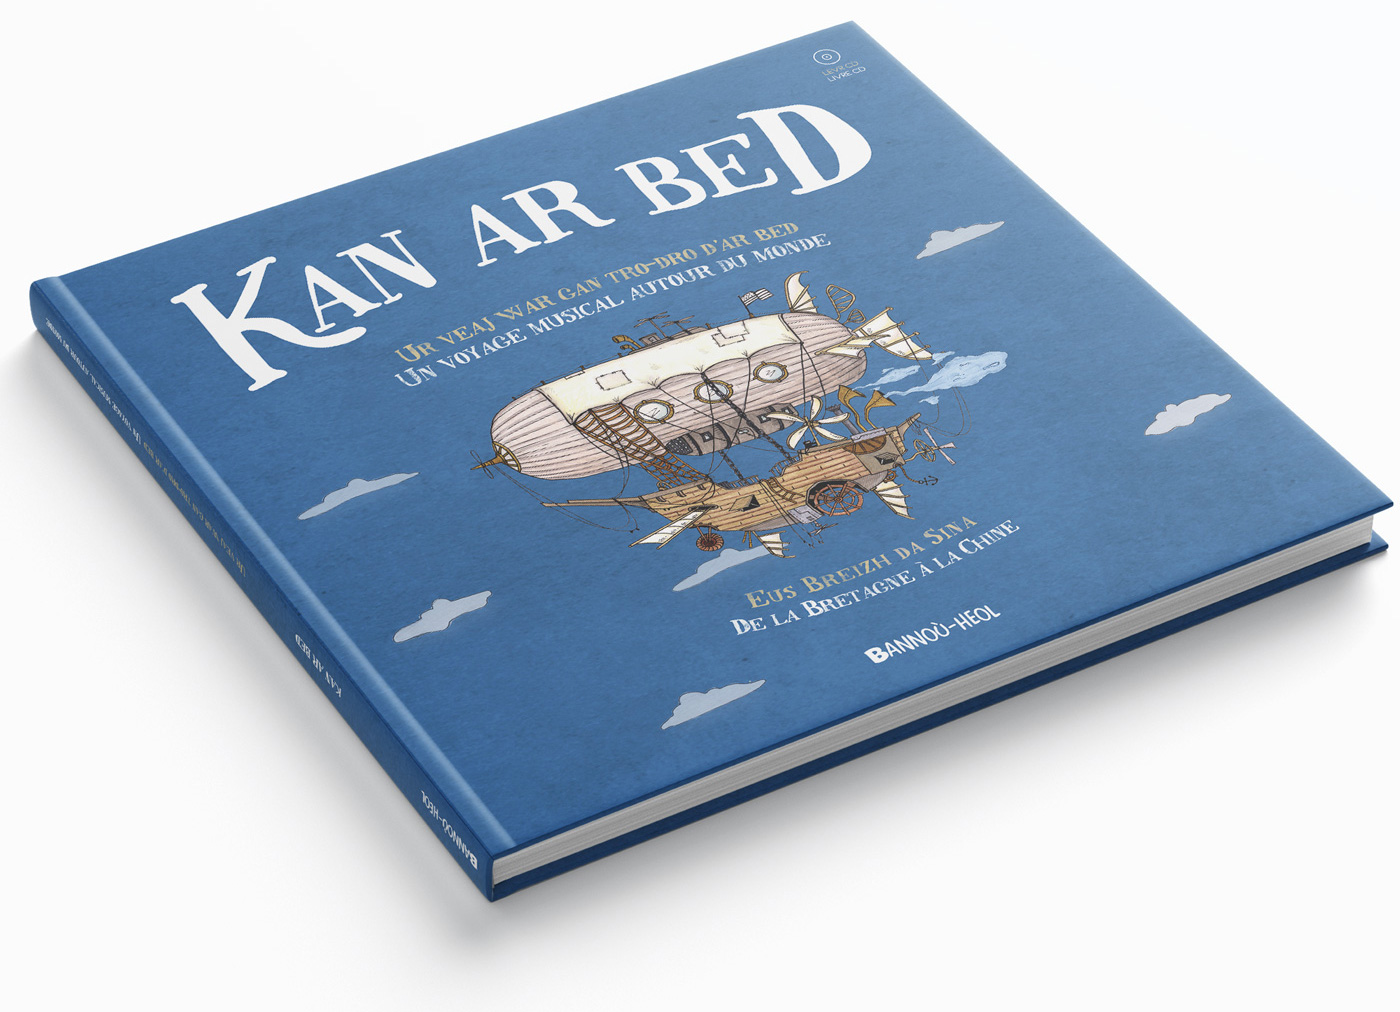 Kan ar Bed - Livre CD